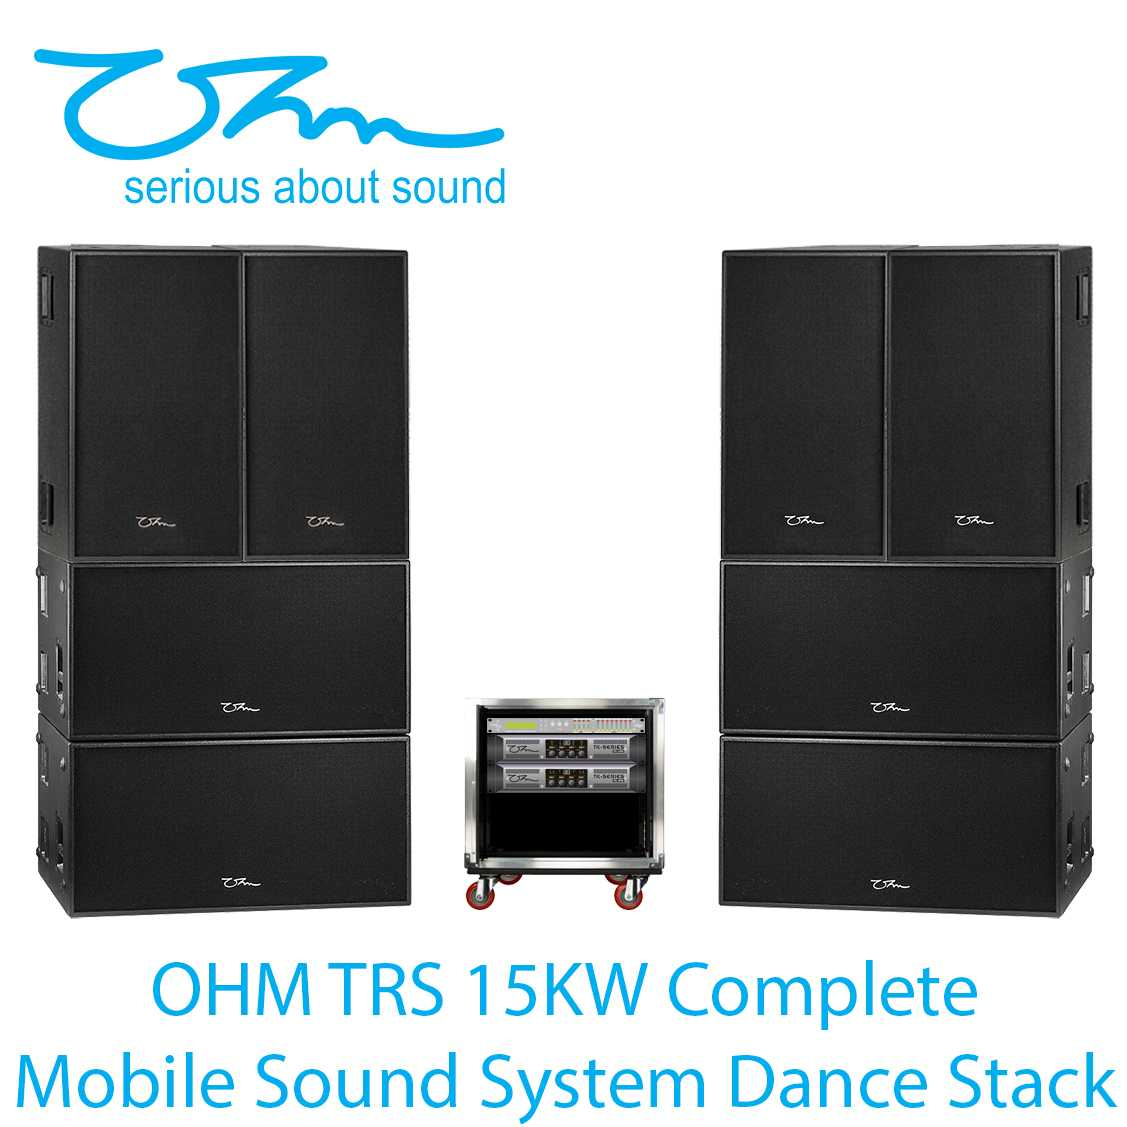 Night Club Venue Av System Solutions Akwil Ltd Audio Wiring Plans For Nightclub Ohm Trs 15kw Complete Mobile Touring Loudspeaker Dance Stack Sound